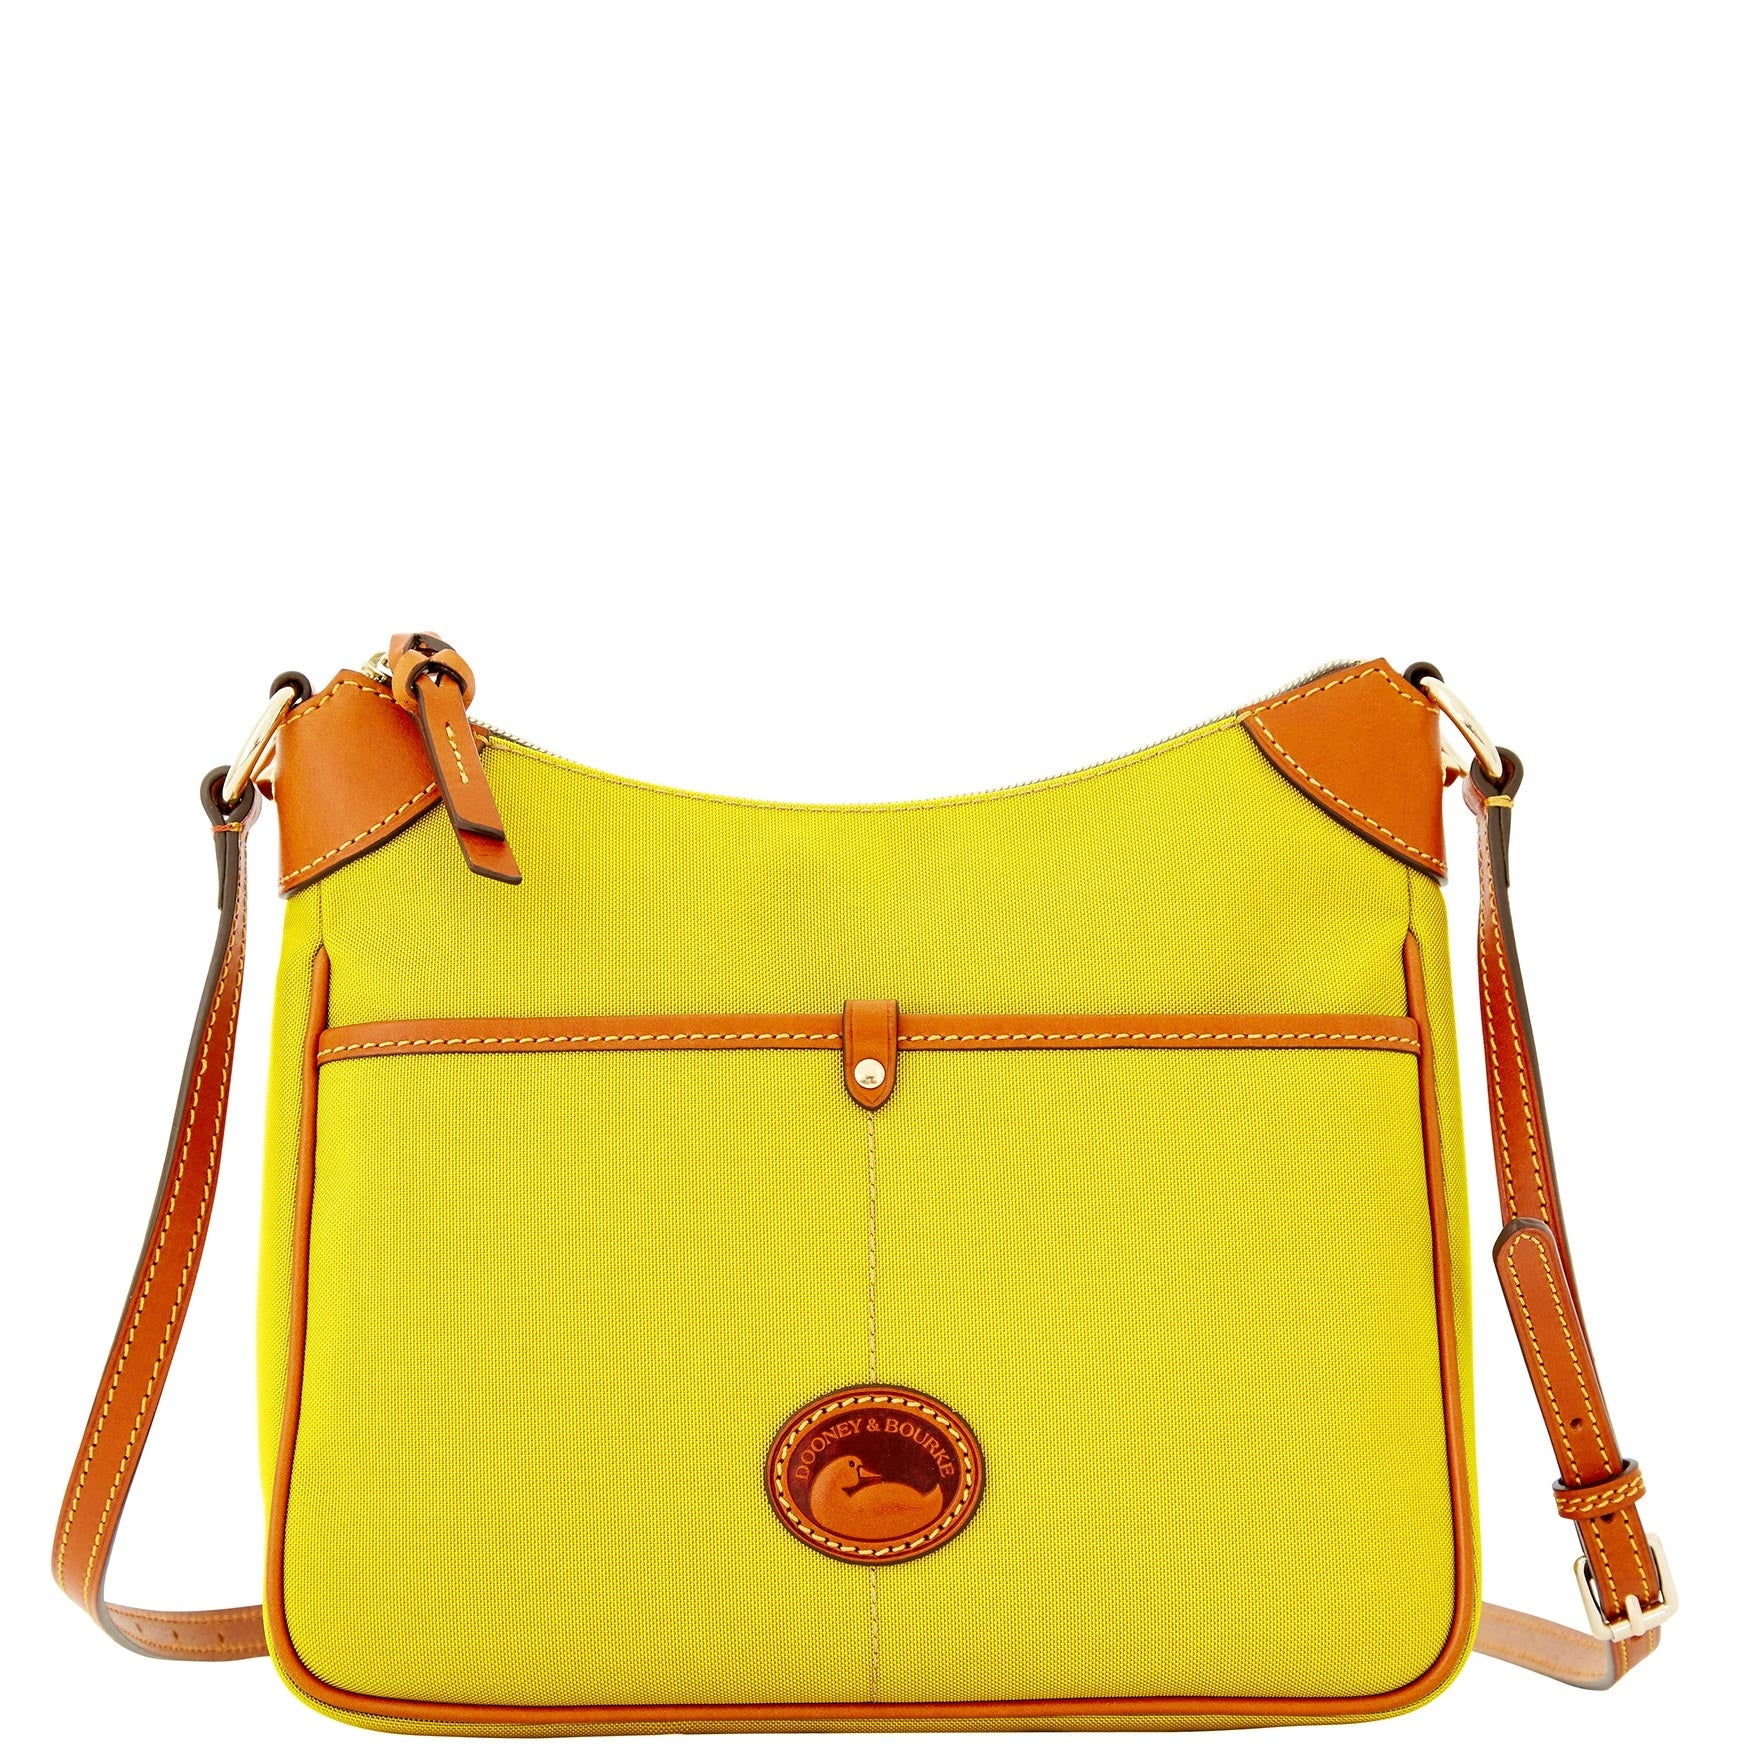 ef3b08eaa4 Buy Dooney   Bourke Shoulder Bags Online at Overstock